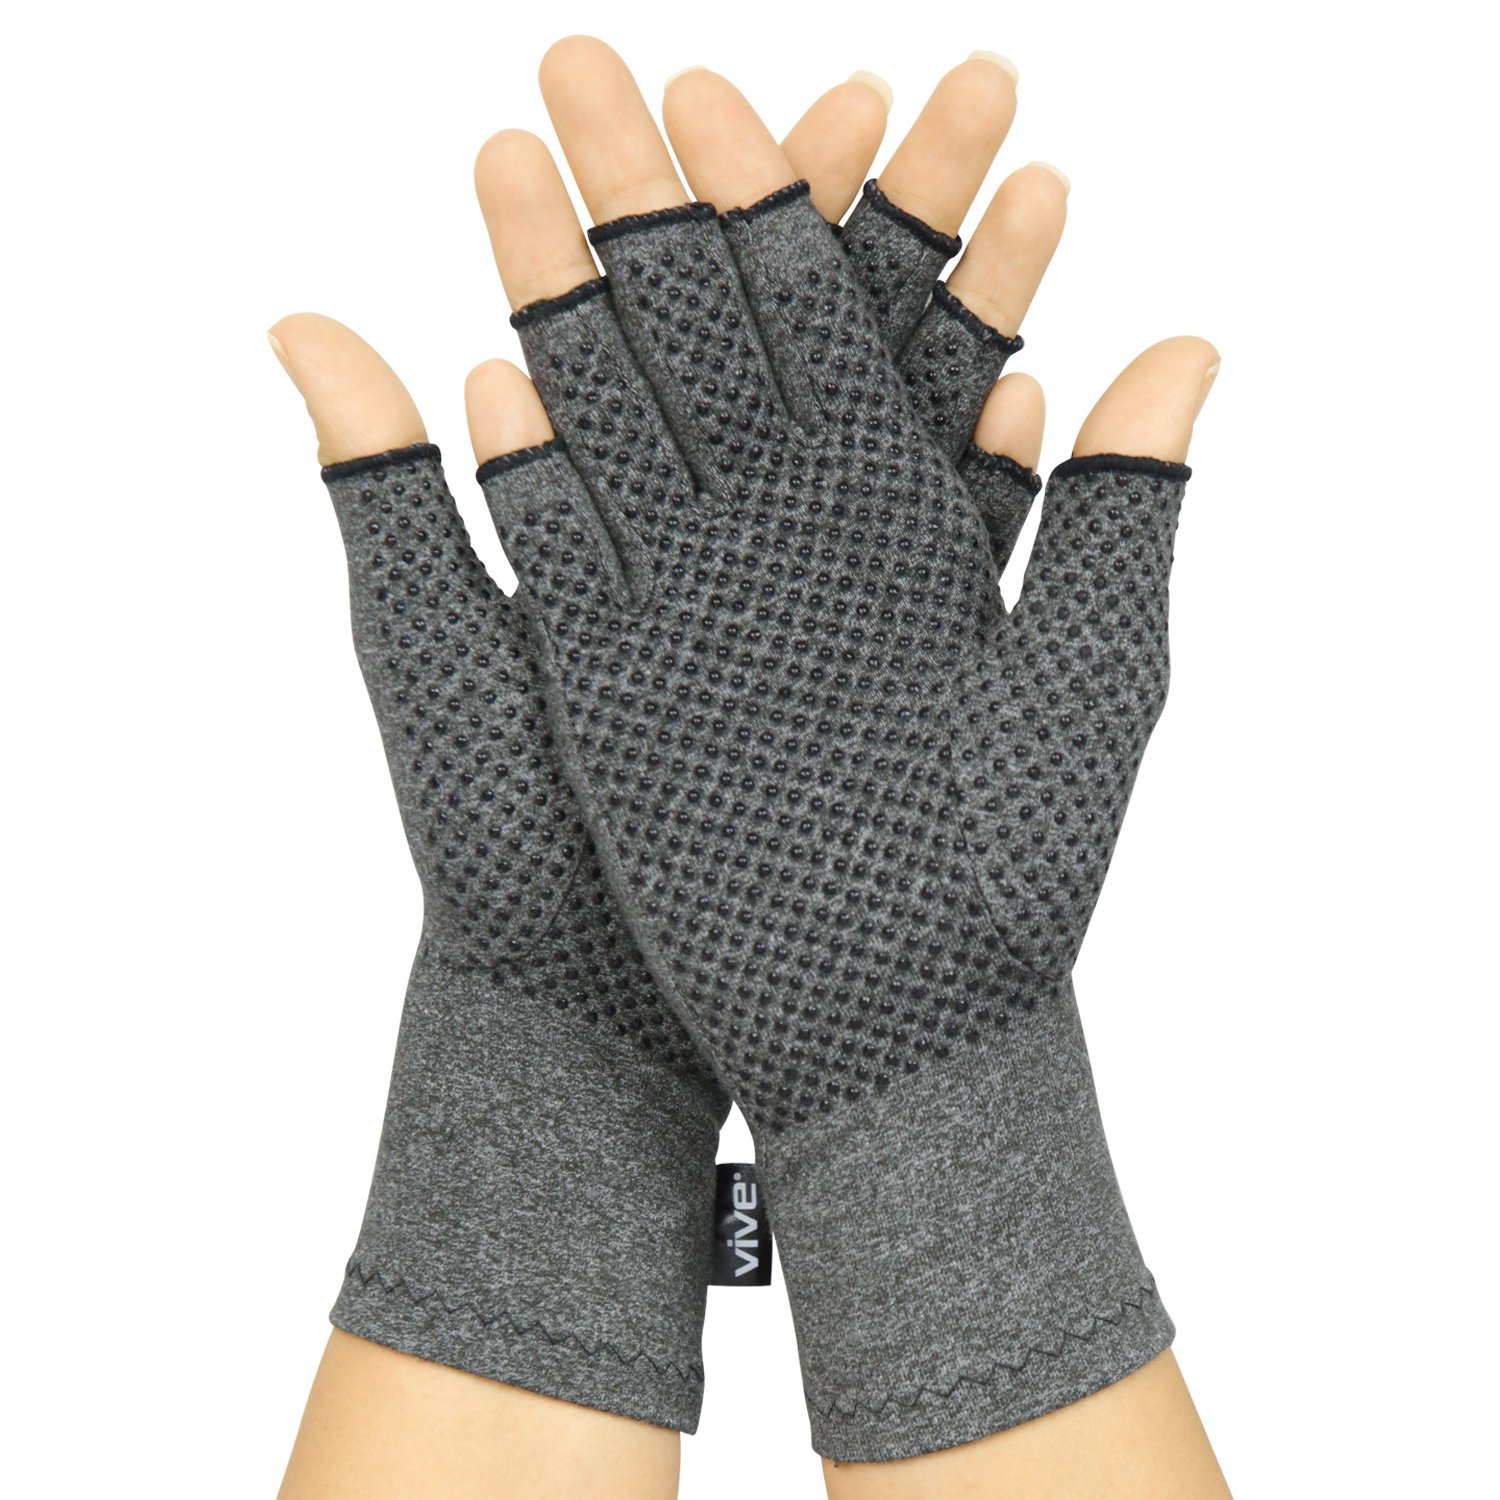 Vive Arthritis Gloves with Grips - Men & Women Textured Fingerless Compression - Open Finger Hand Gloves for Rheumatoid and Osteoarthritis - Arthritic Joint Pain Relief for Computer Typing (Medium) by Vive